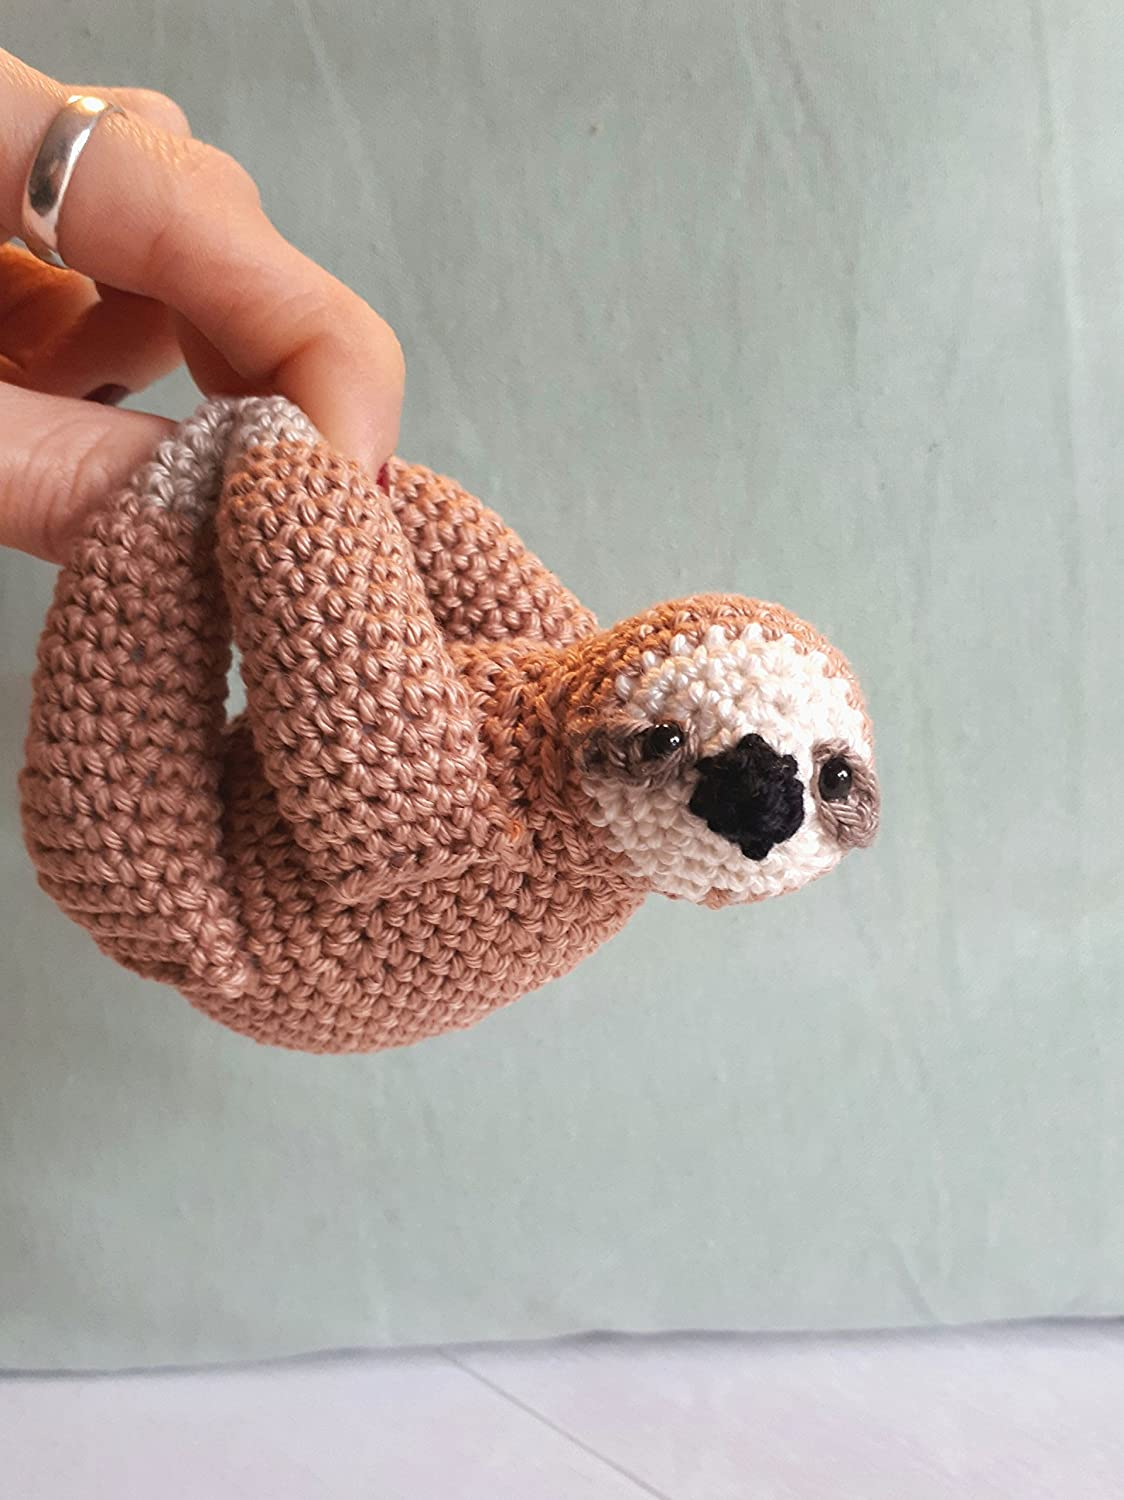 Amigurumi Sloths In The Jungle - Pattern Center | 1500x1124